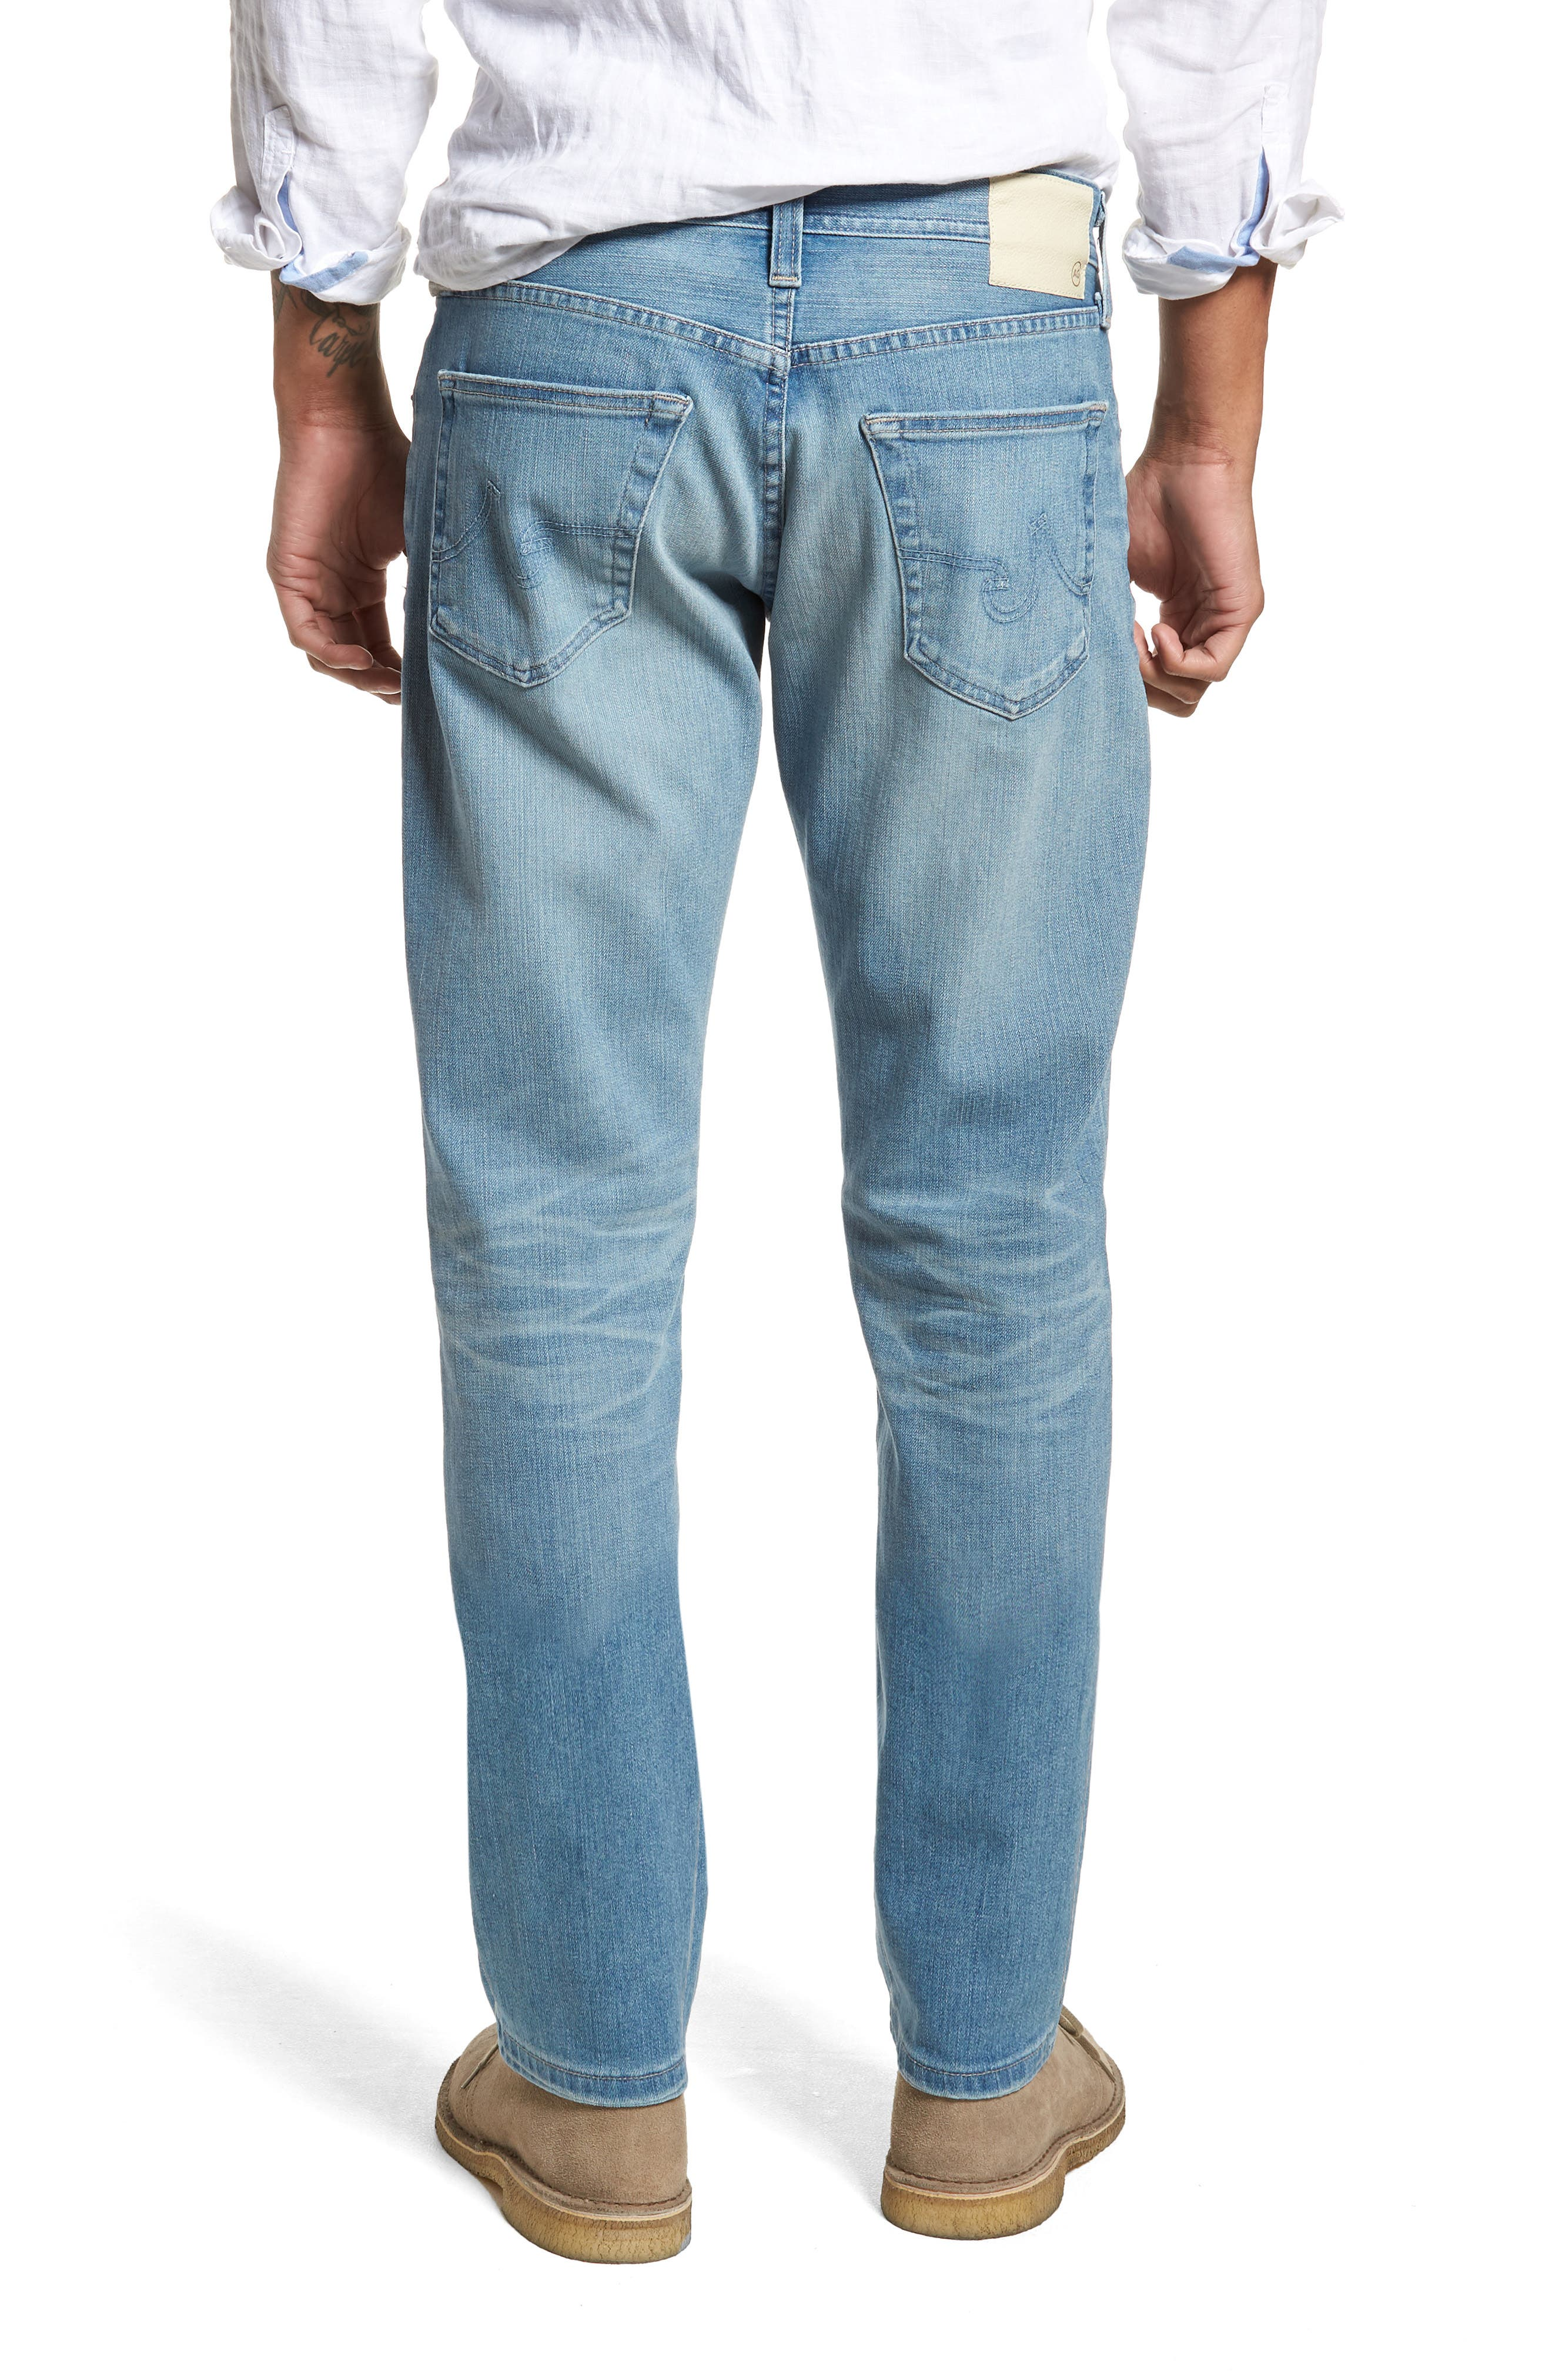 Graduate Slim Straight Leg Jeans,                             Alternate thumbnail 2, color,                             19 Years Channel